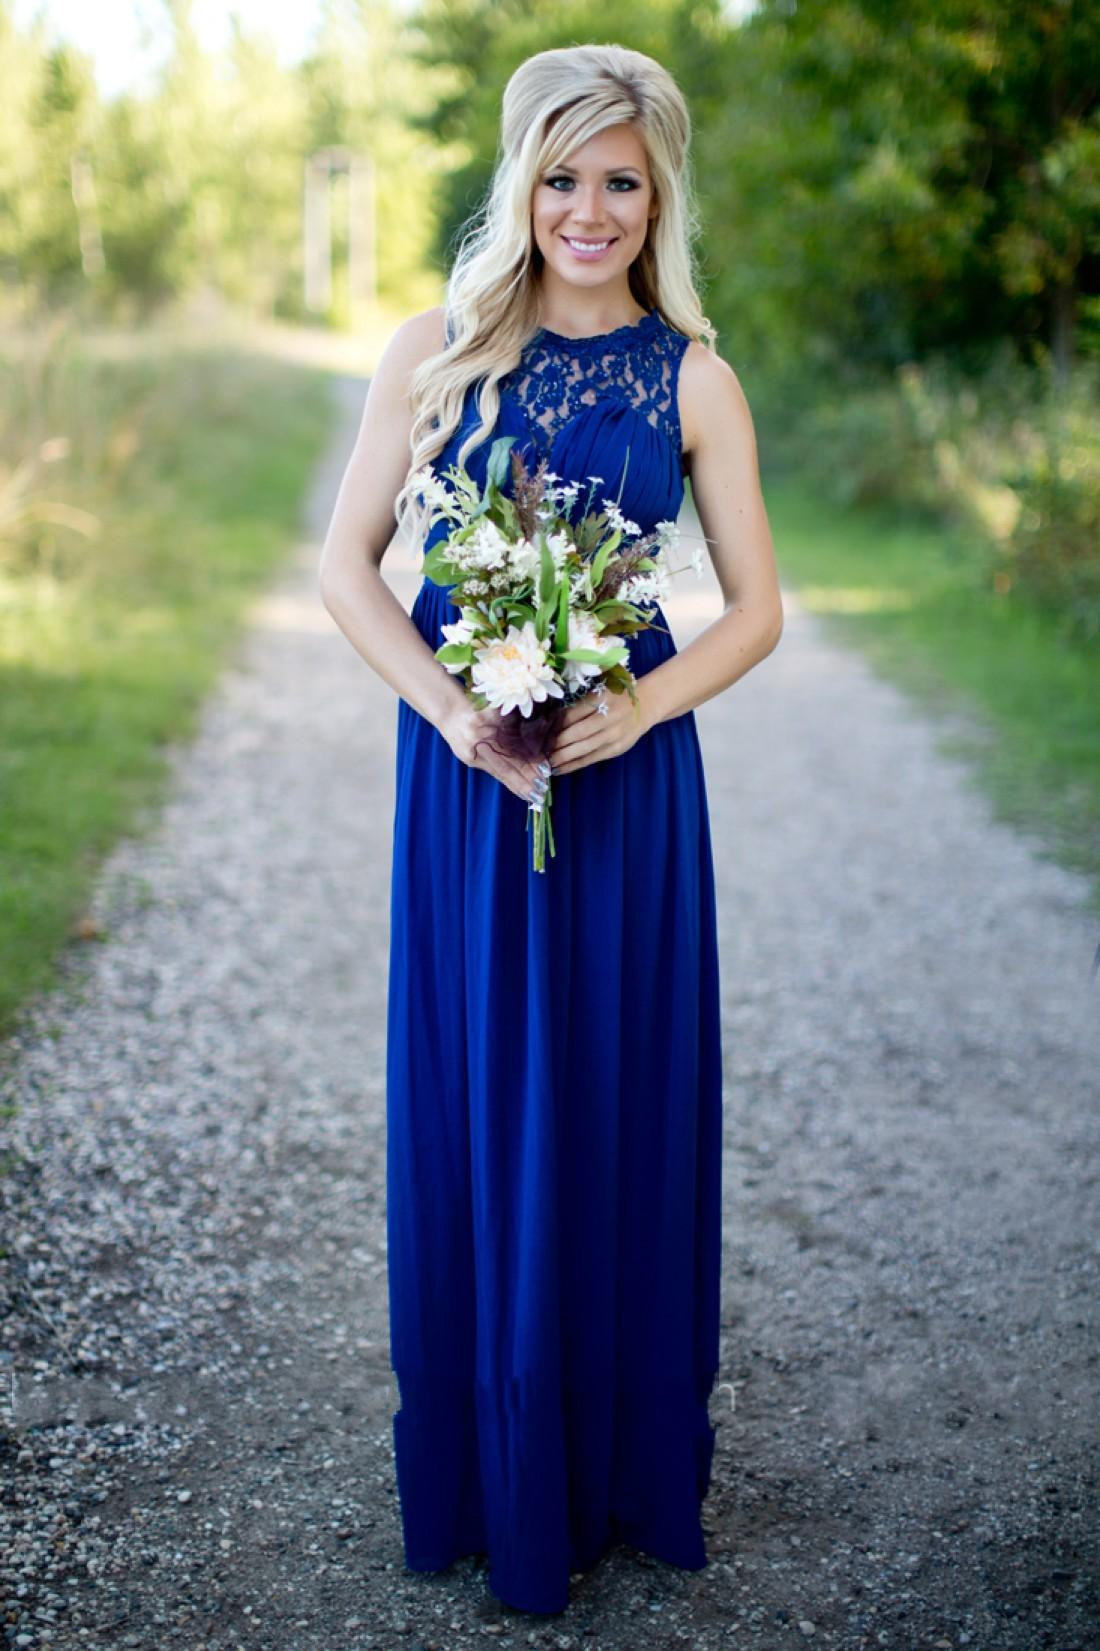 Country bridesmaid dresses 2017 long for wedding royal blue country bridesmaid dresses 2017 long for wedding royal blue chiffon lace illusion neck sheer with beads plus size party maid honor under 100 bridesmaid ombrellifo Gallery